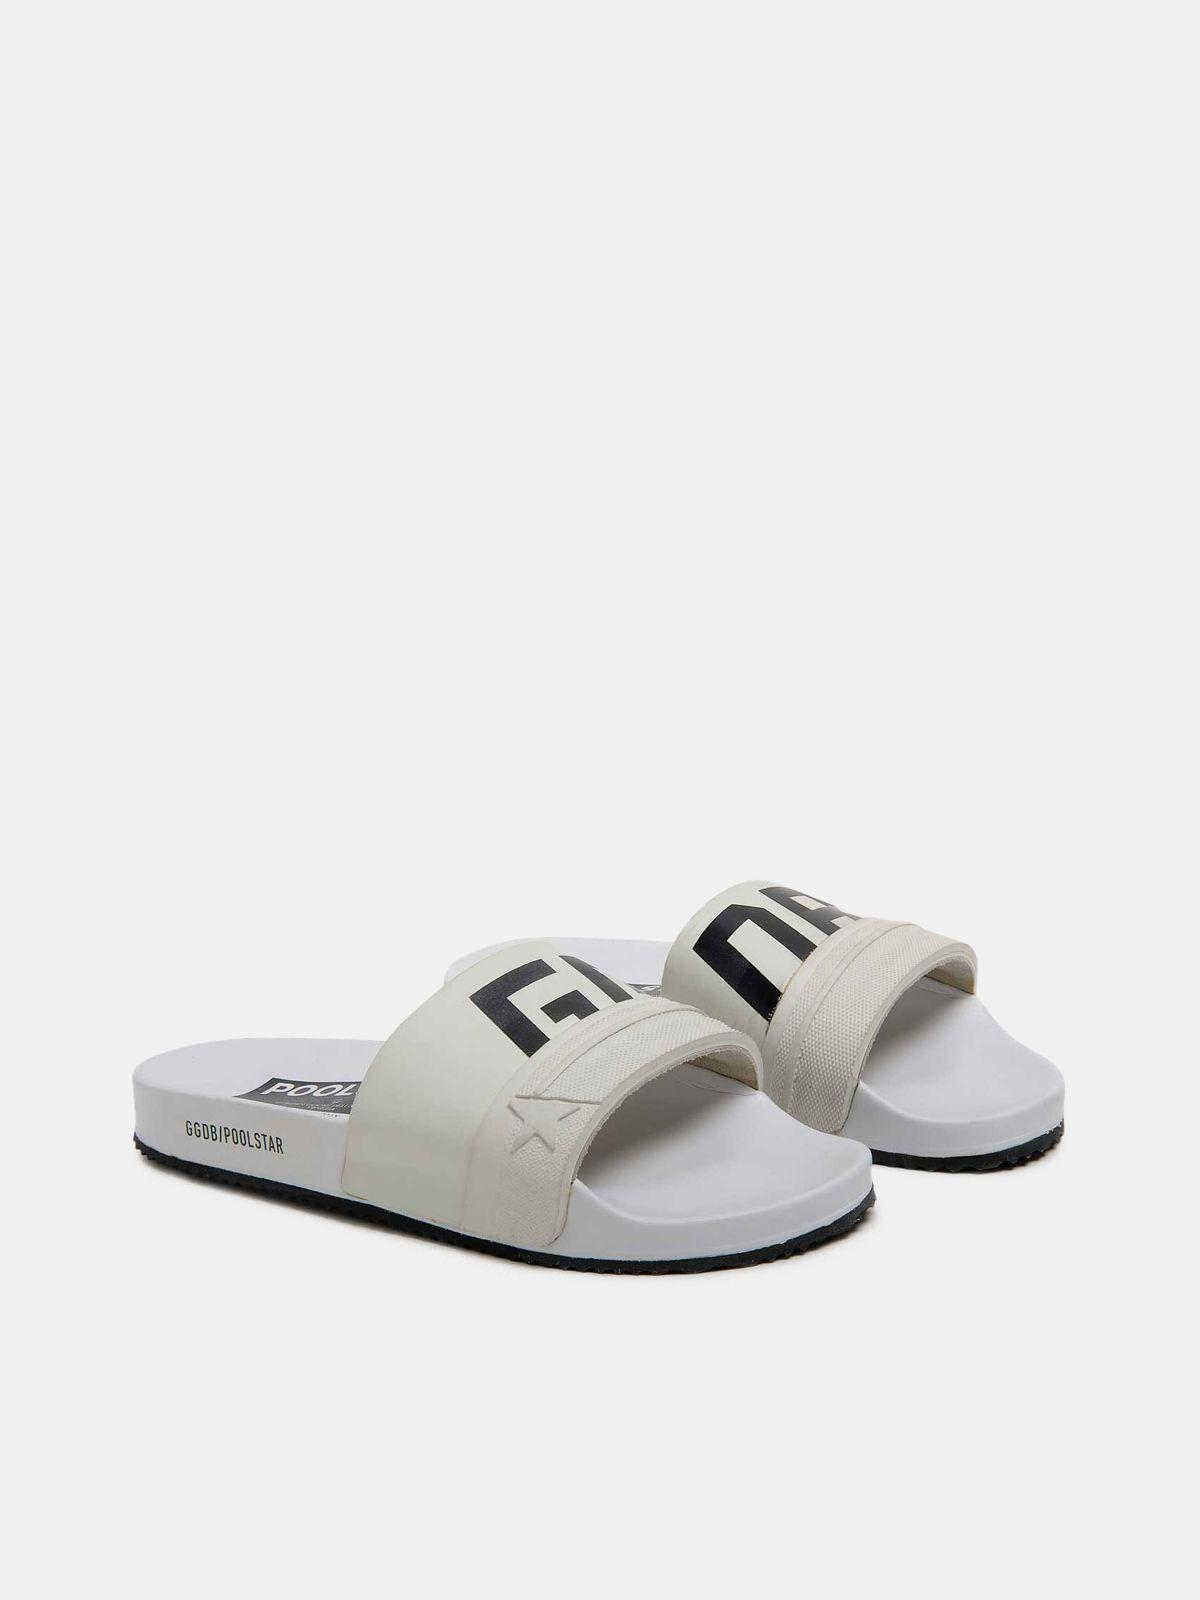 White Poolstars for women with GGDB logo 2